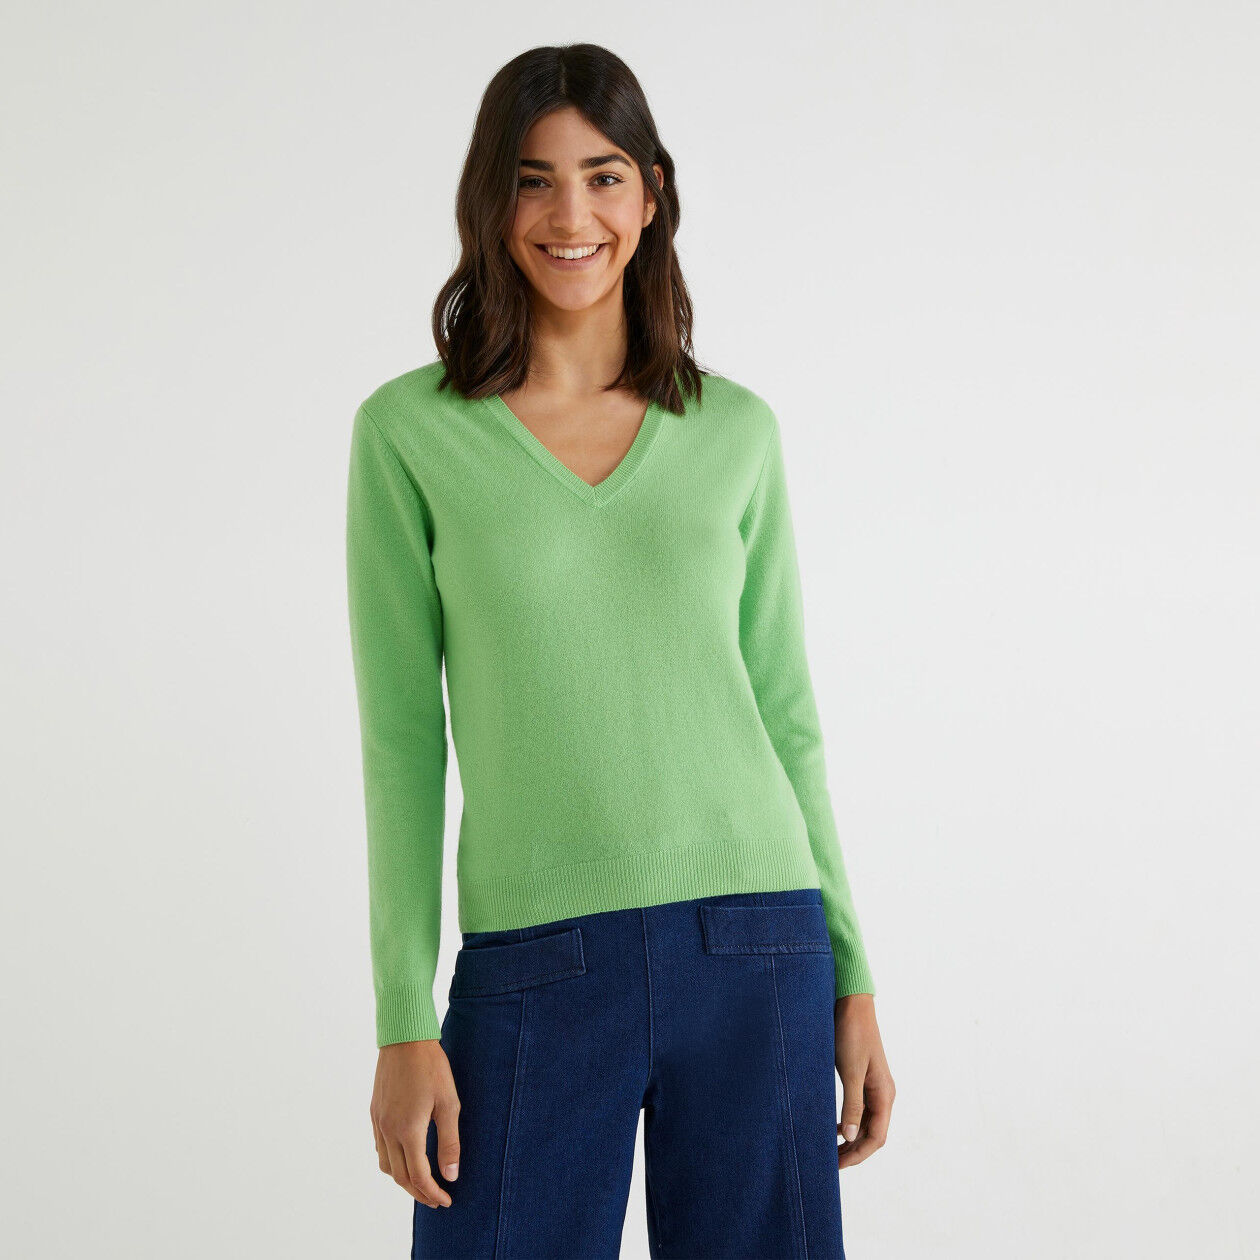 V-neck sweater in 100% virgin wool